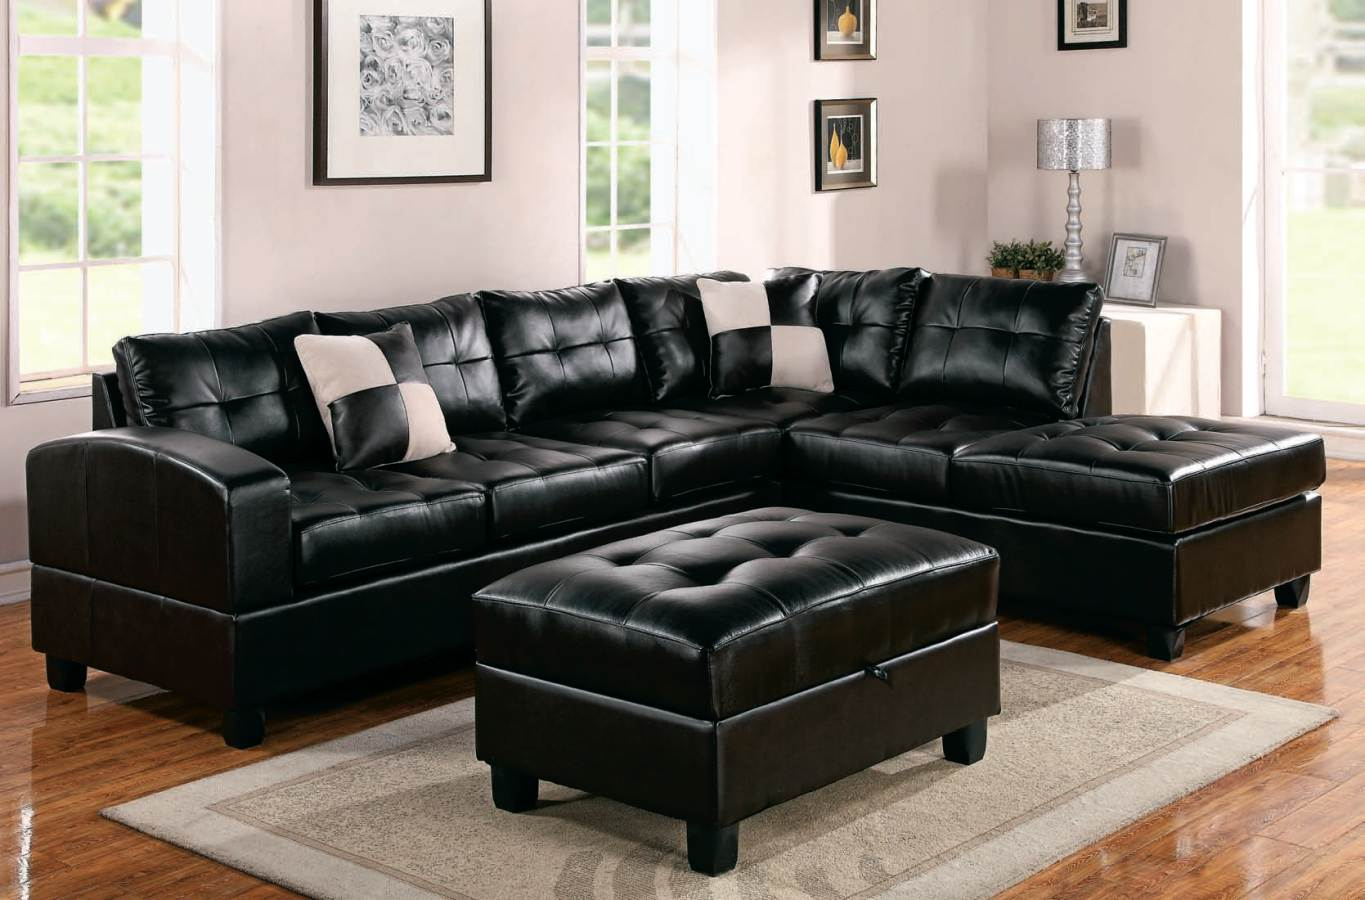 Cool Black Leather Sofa Sale Get Your Dream Affordable Leather Gmtry Best Dining Table And Chair Ideas Images Gmtryco